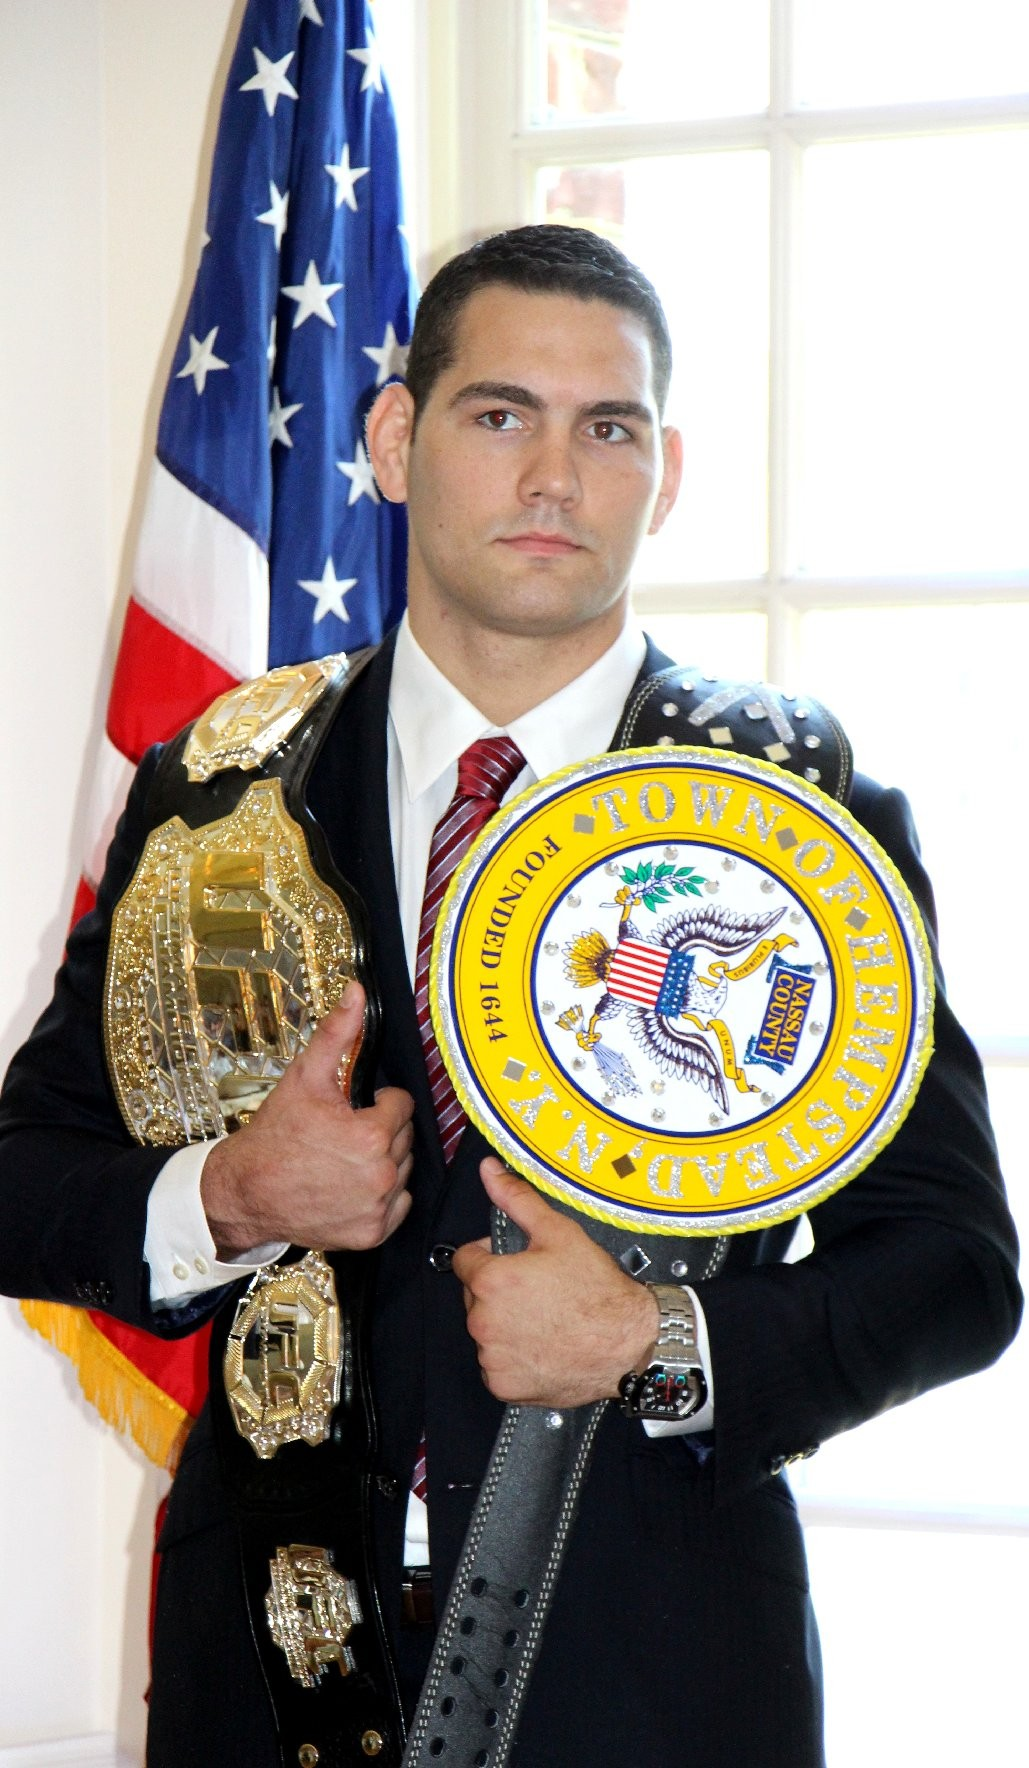 Chris Weidman, who wrestled for Baldwin High School as well as Hofstra and Nassau Community College, will appear at a fundraiser on Sept. 11 to support sports at Baldwin Middle School.